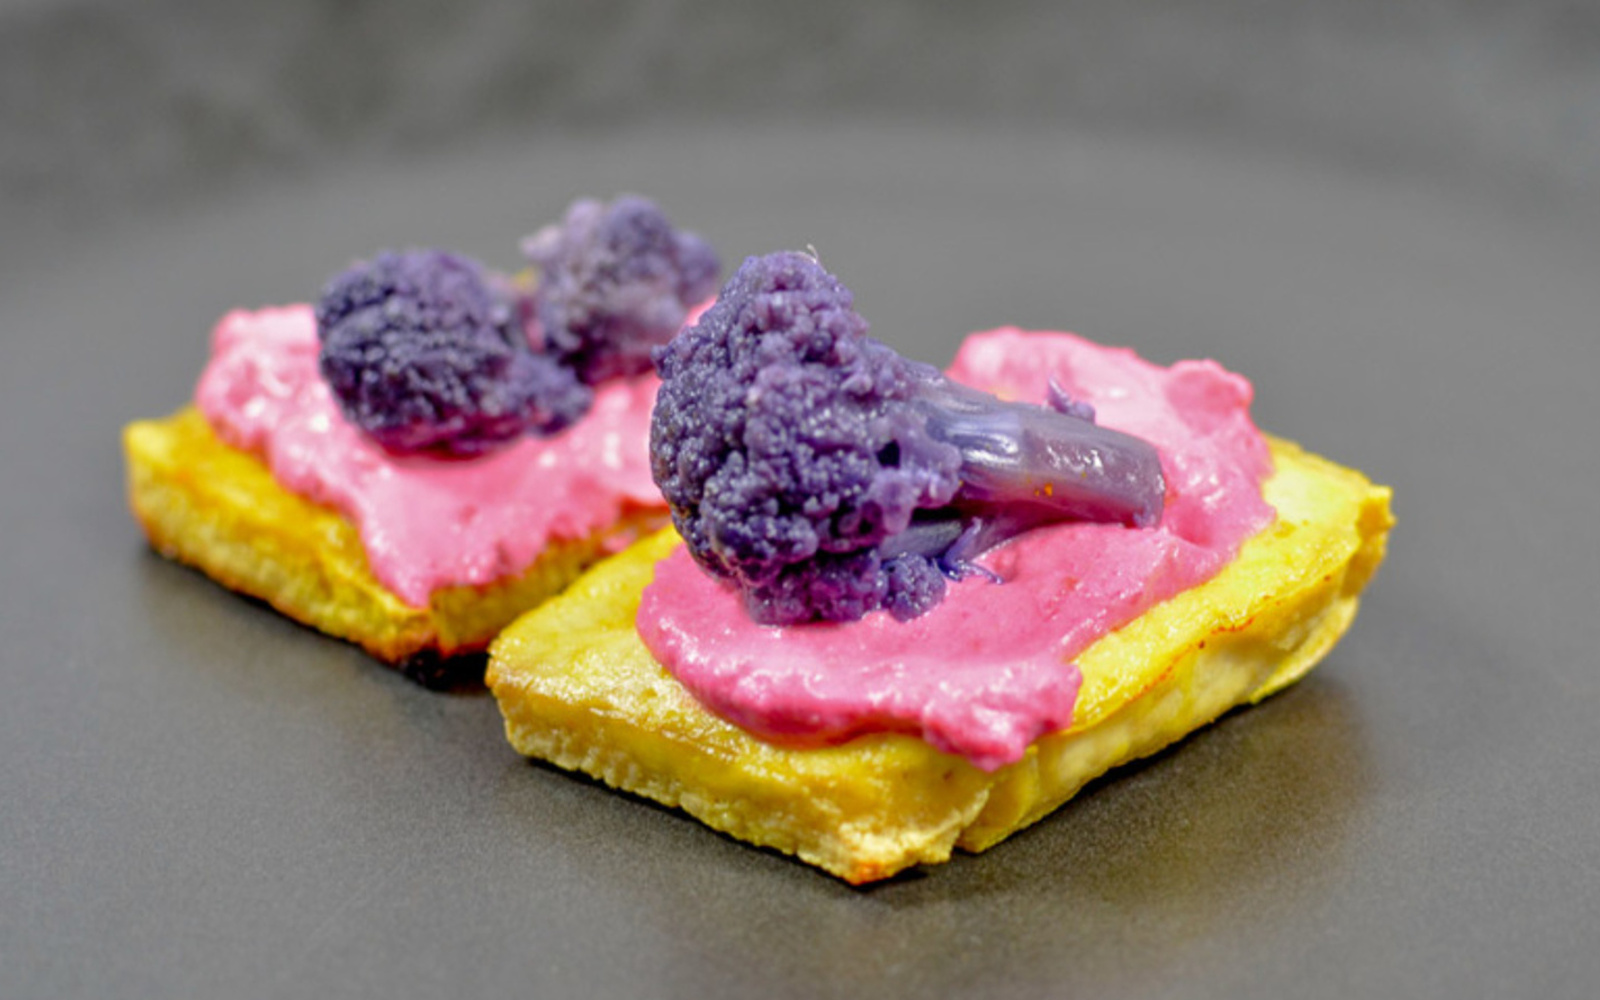 Tofu Hors D'oeuvre With Beet Hummus